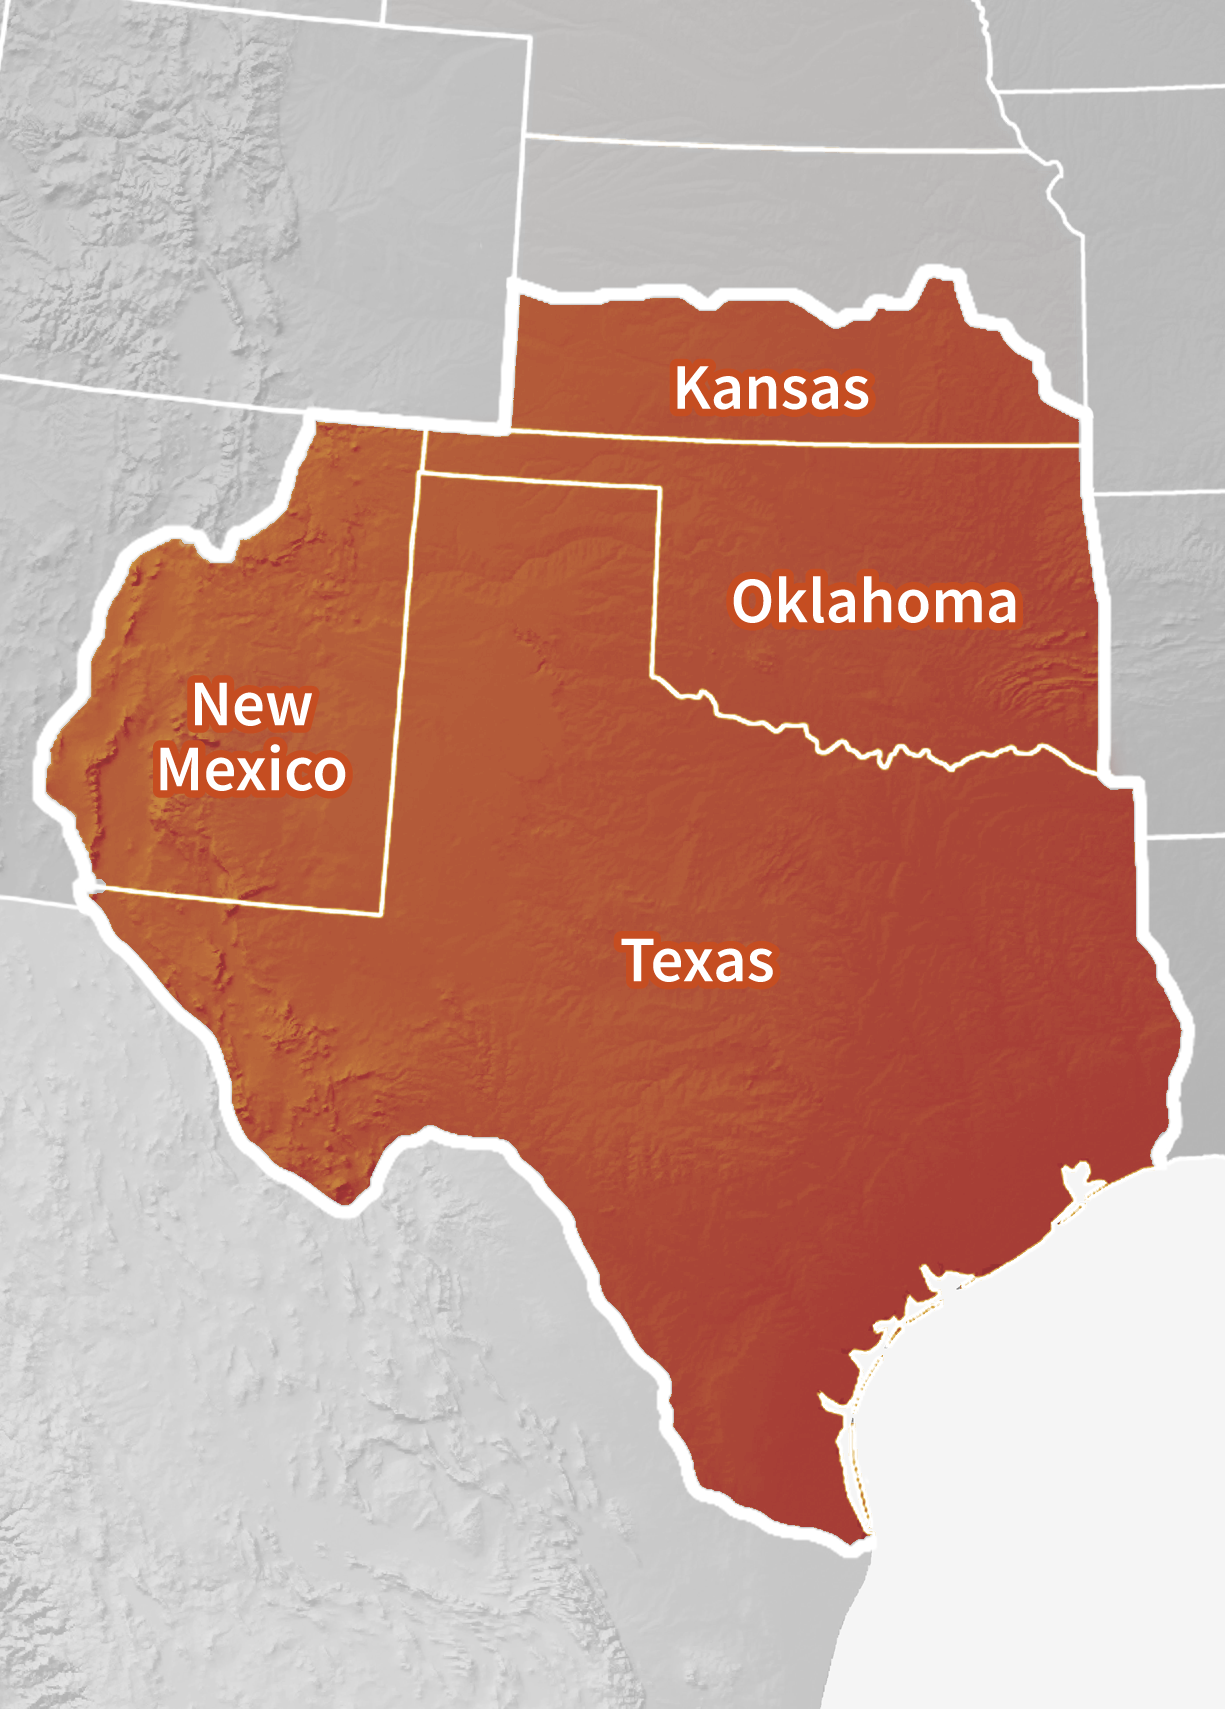 Map of the Southern Plains DEWS region, which includes Oklahoma, Texas, and parts of Kansas and New Mexico